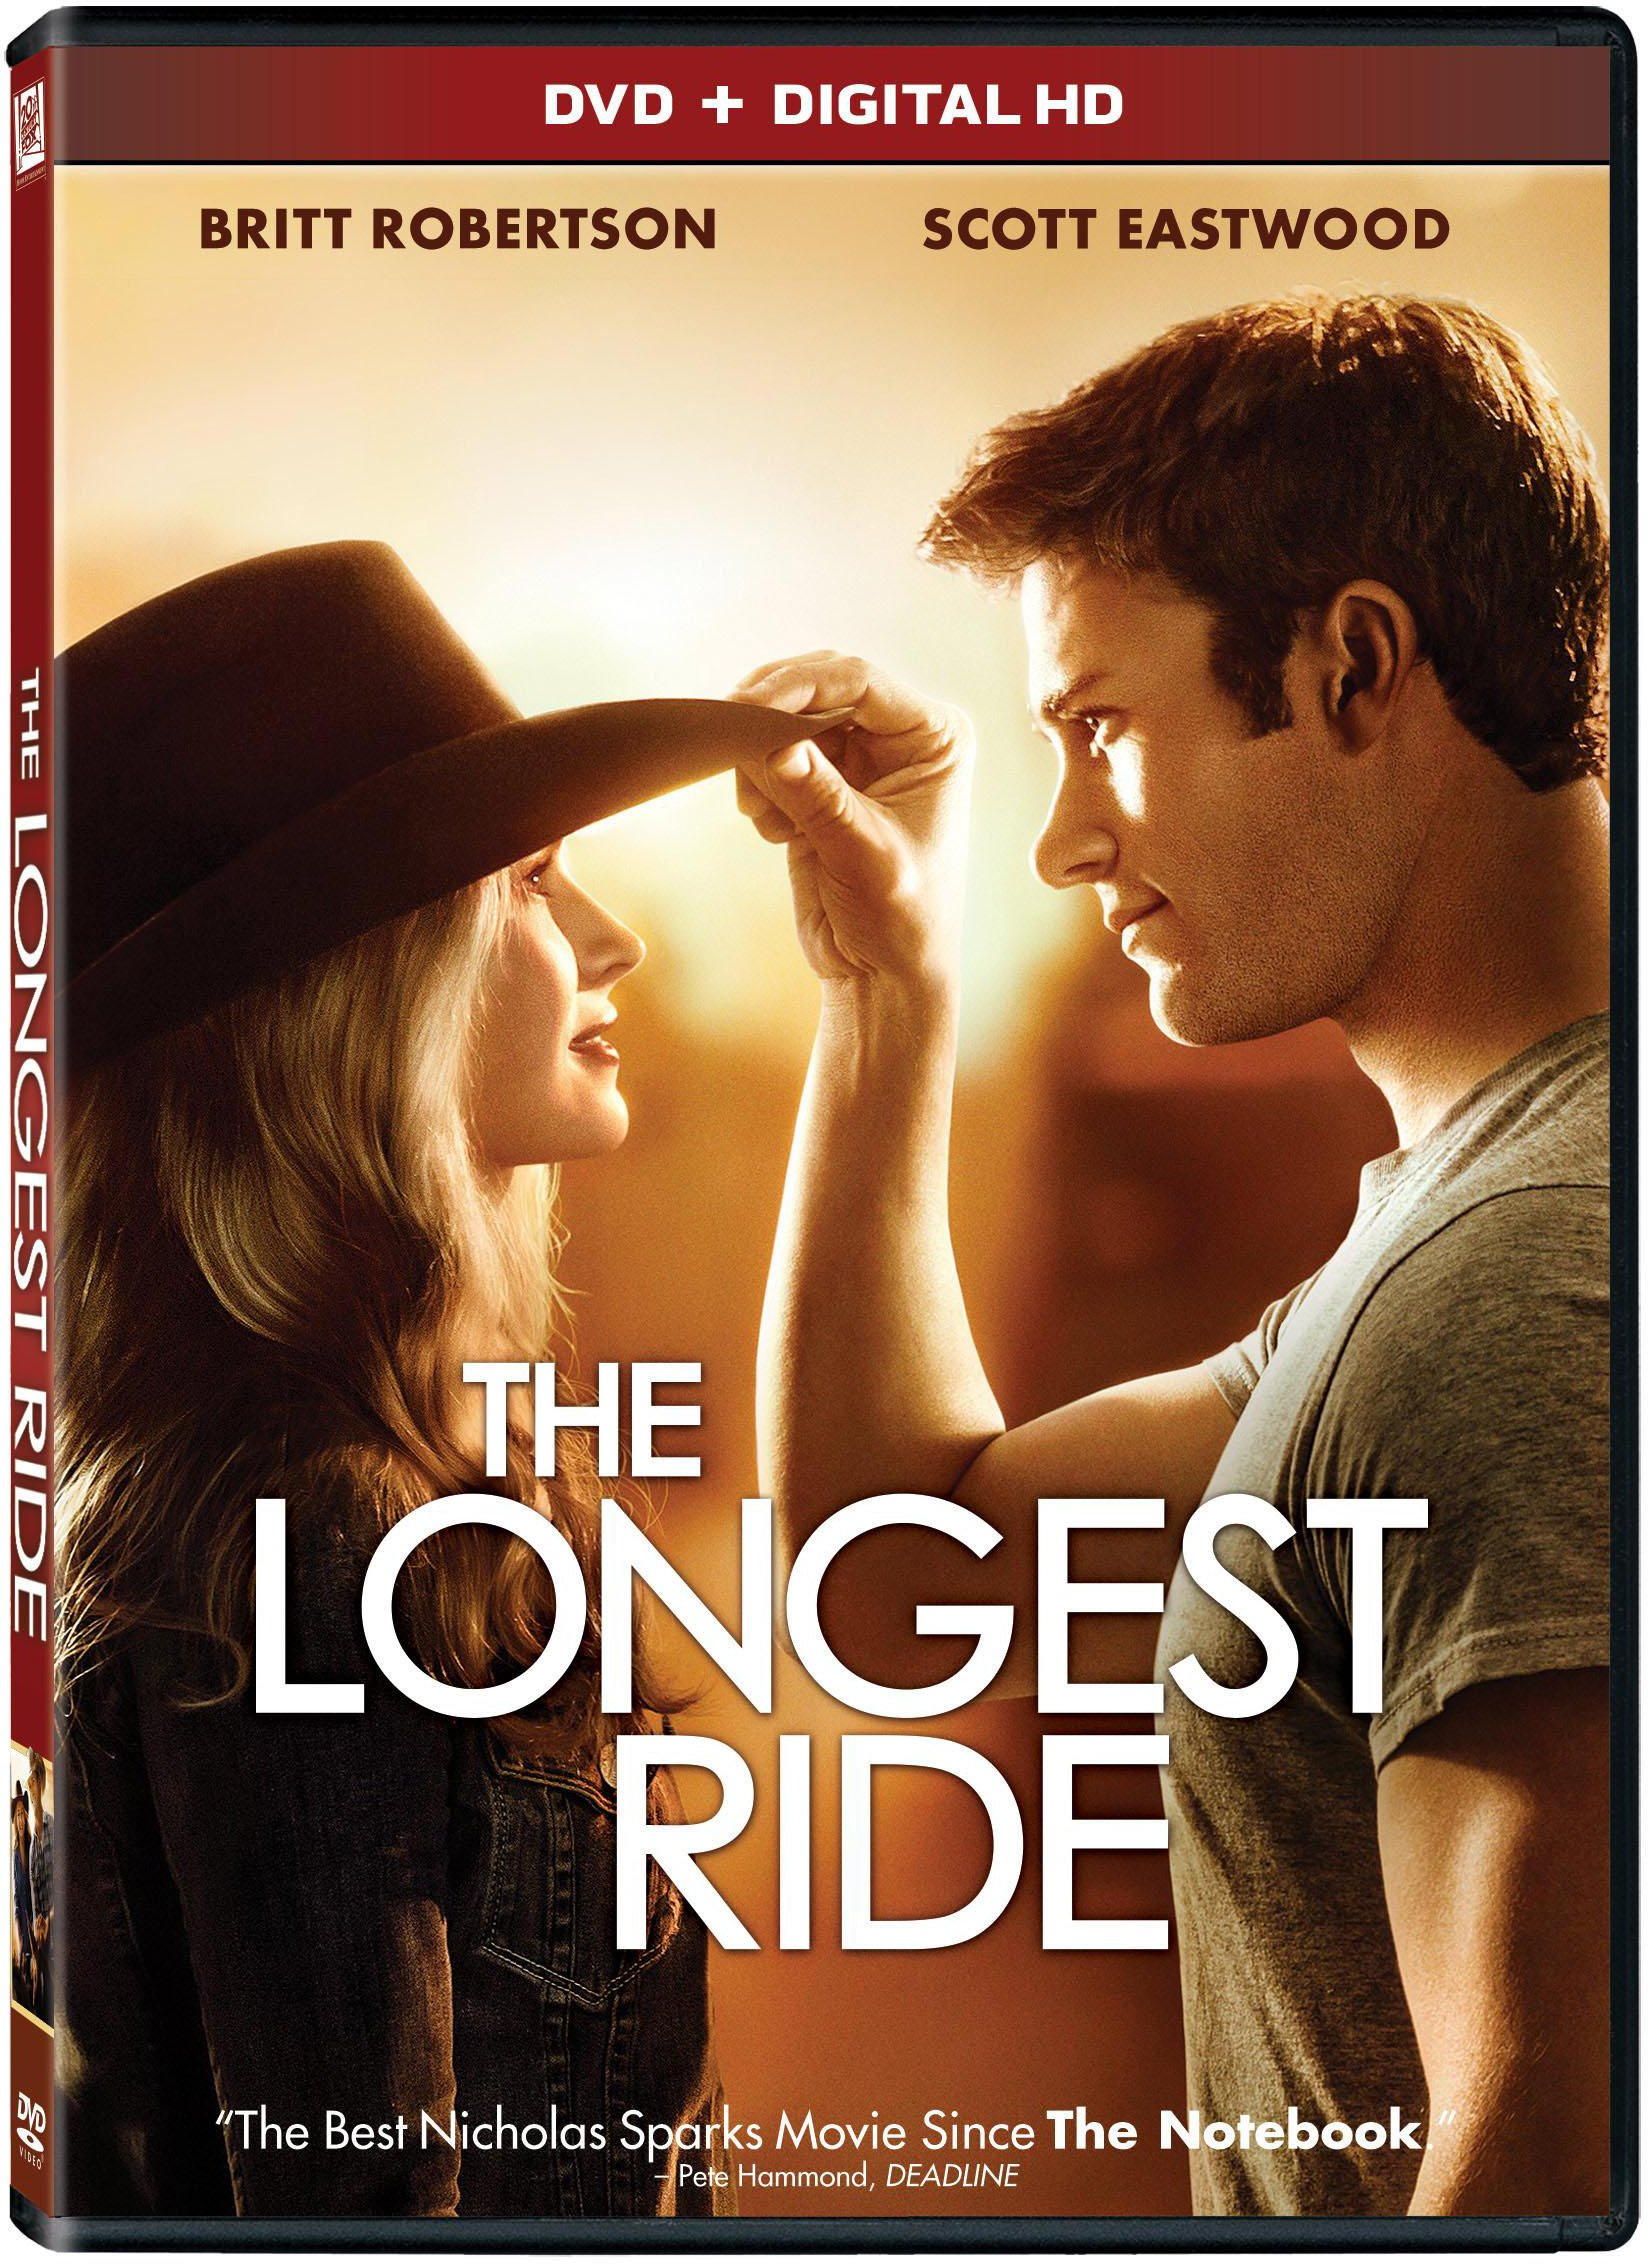 DVD : The Longest Ride (Dubbed, , Dolby, Digitally Mastered in HD, Digital Theater System)